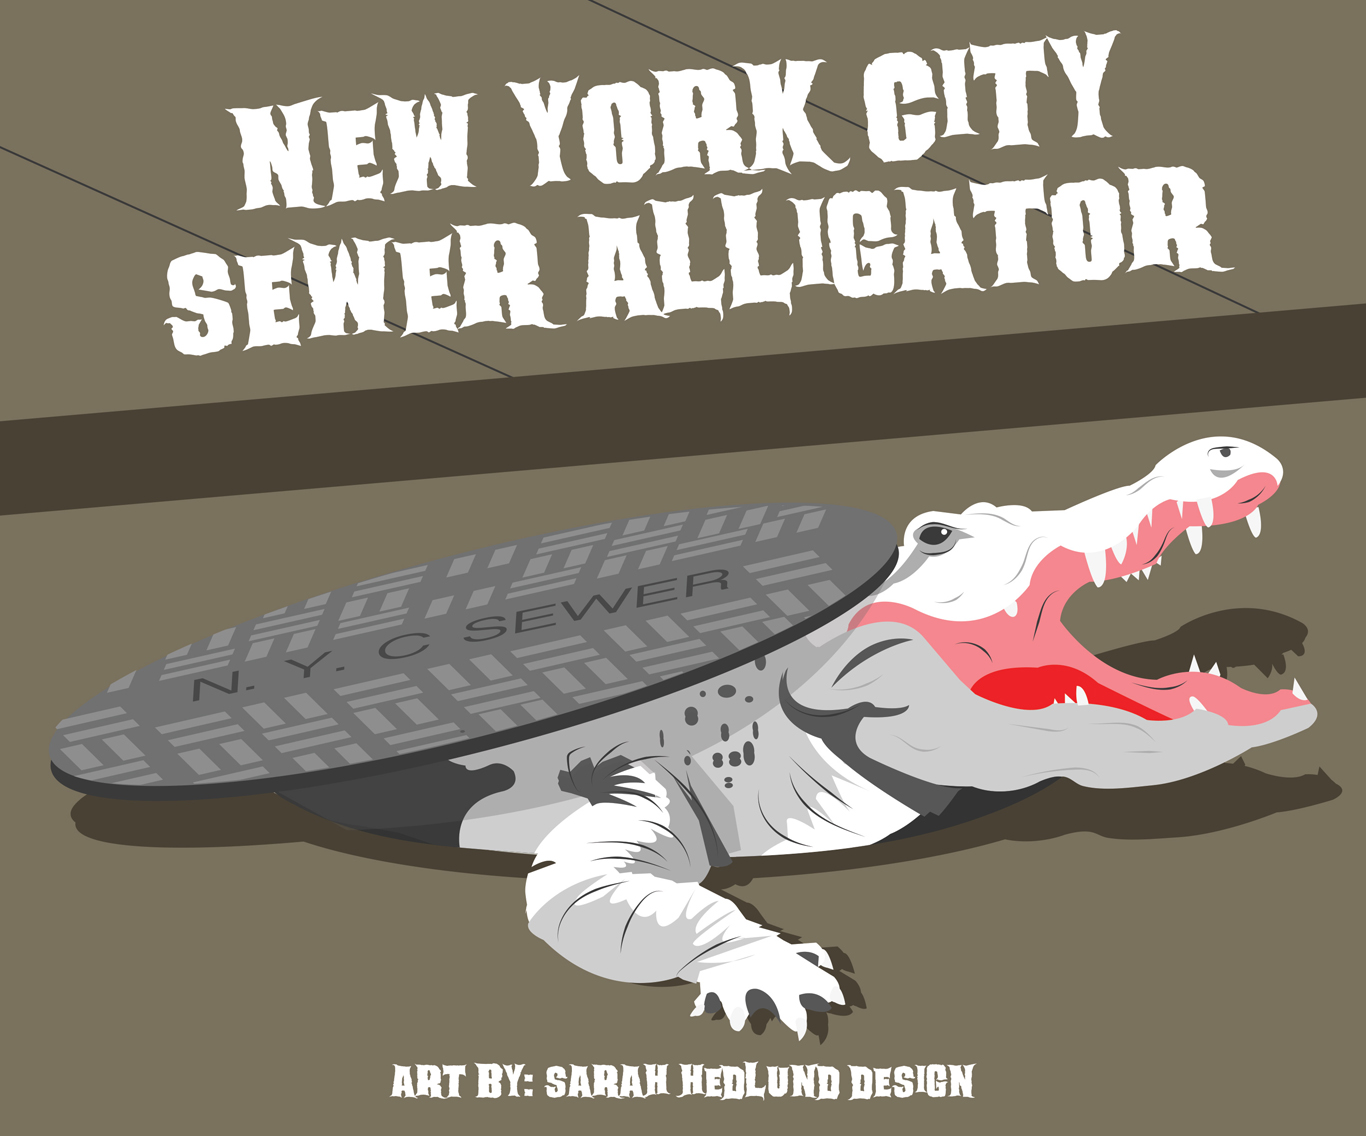 NYC alligator urban legend © Sarah Hedlund Design